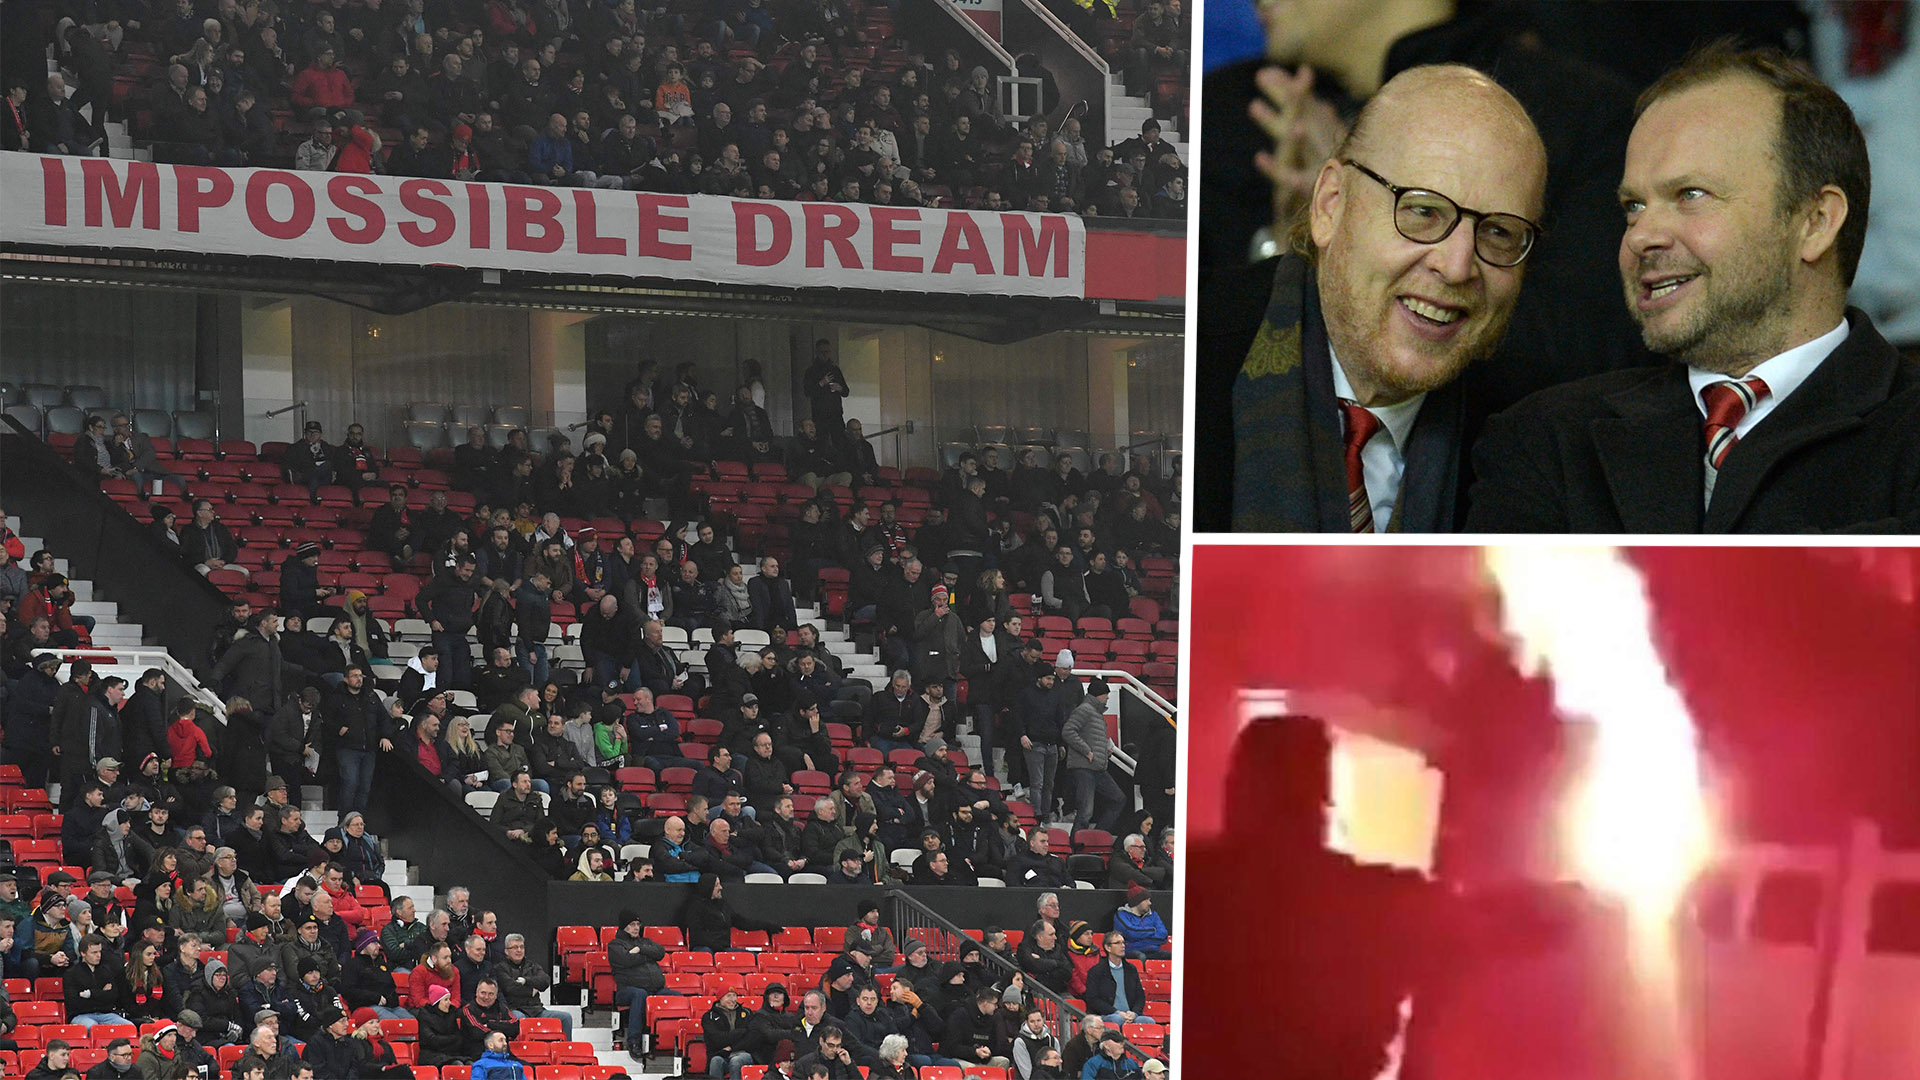 More Man Utd protests expected following attack on Woodward's home